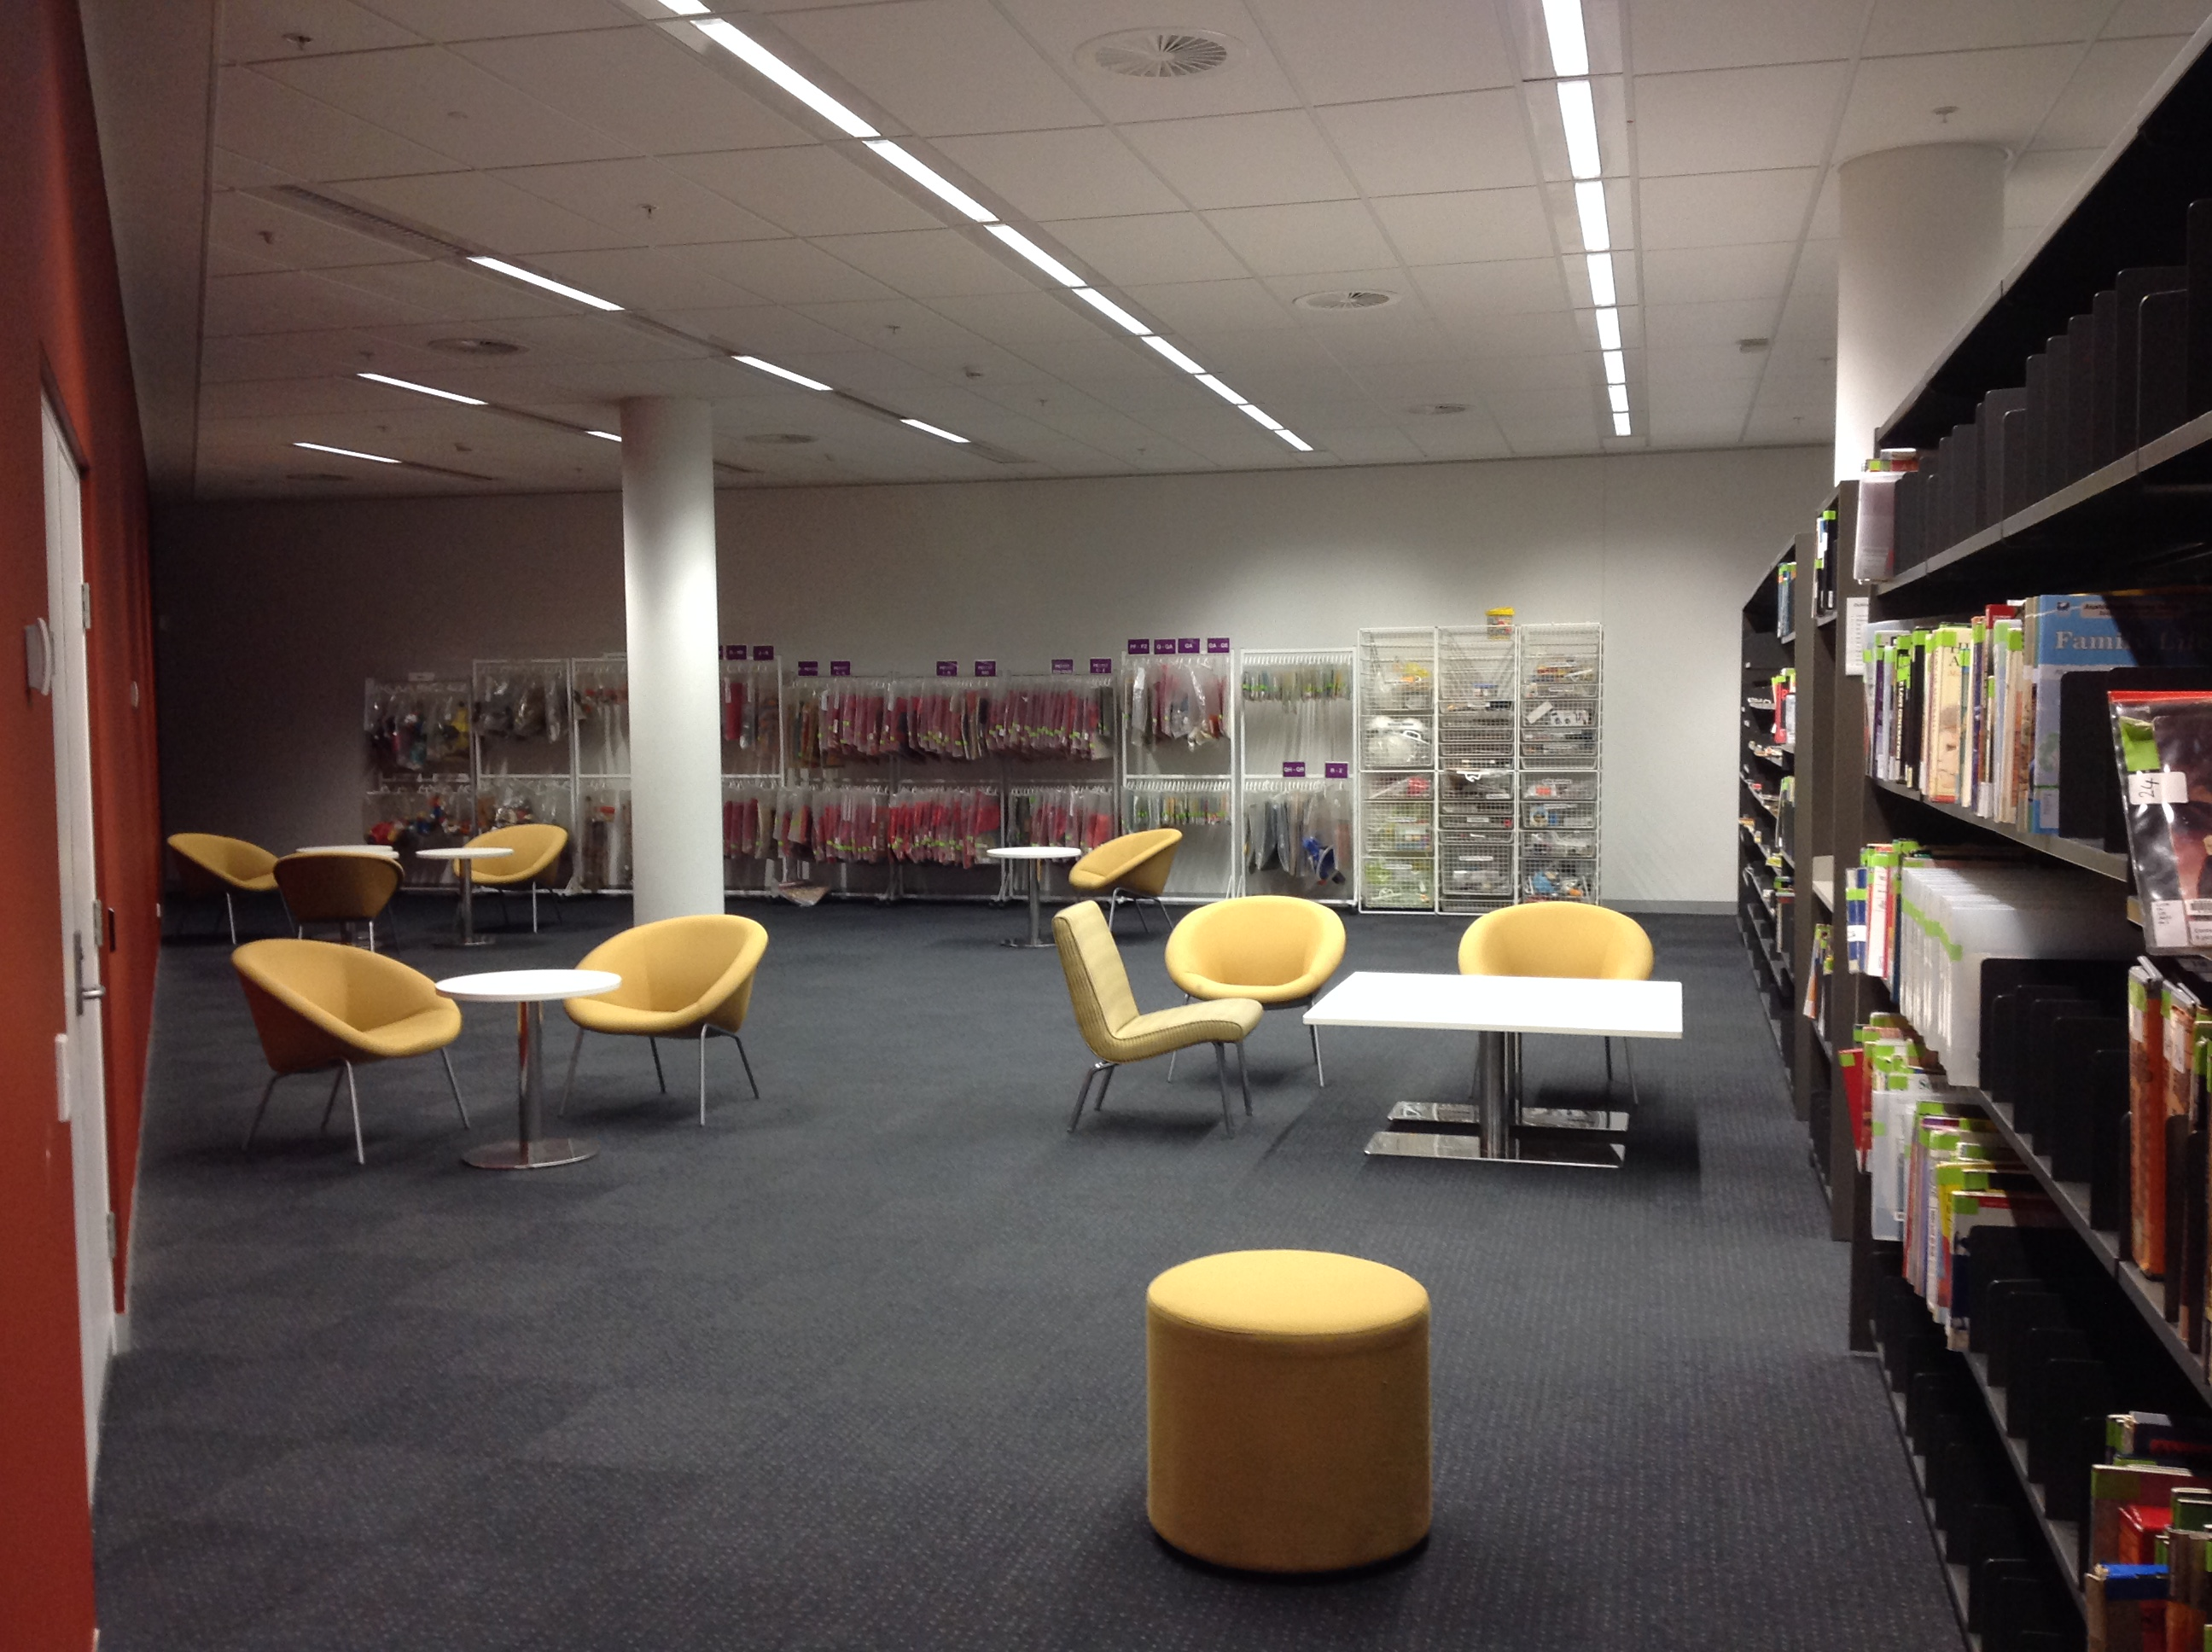 Curriculum collection area on Level 1